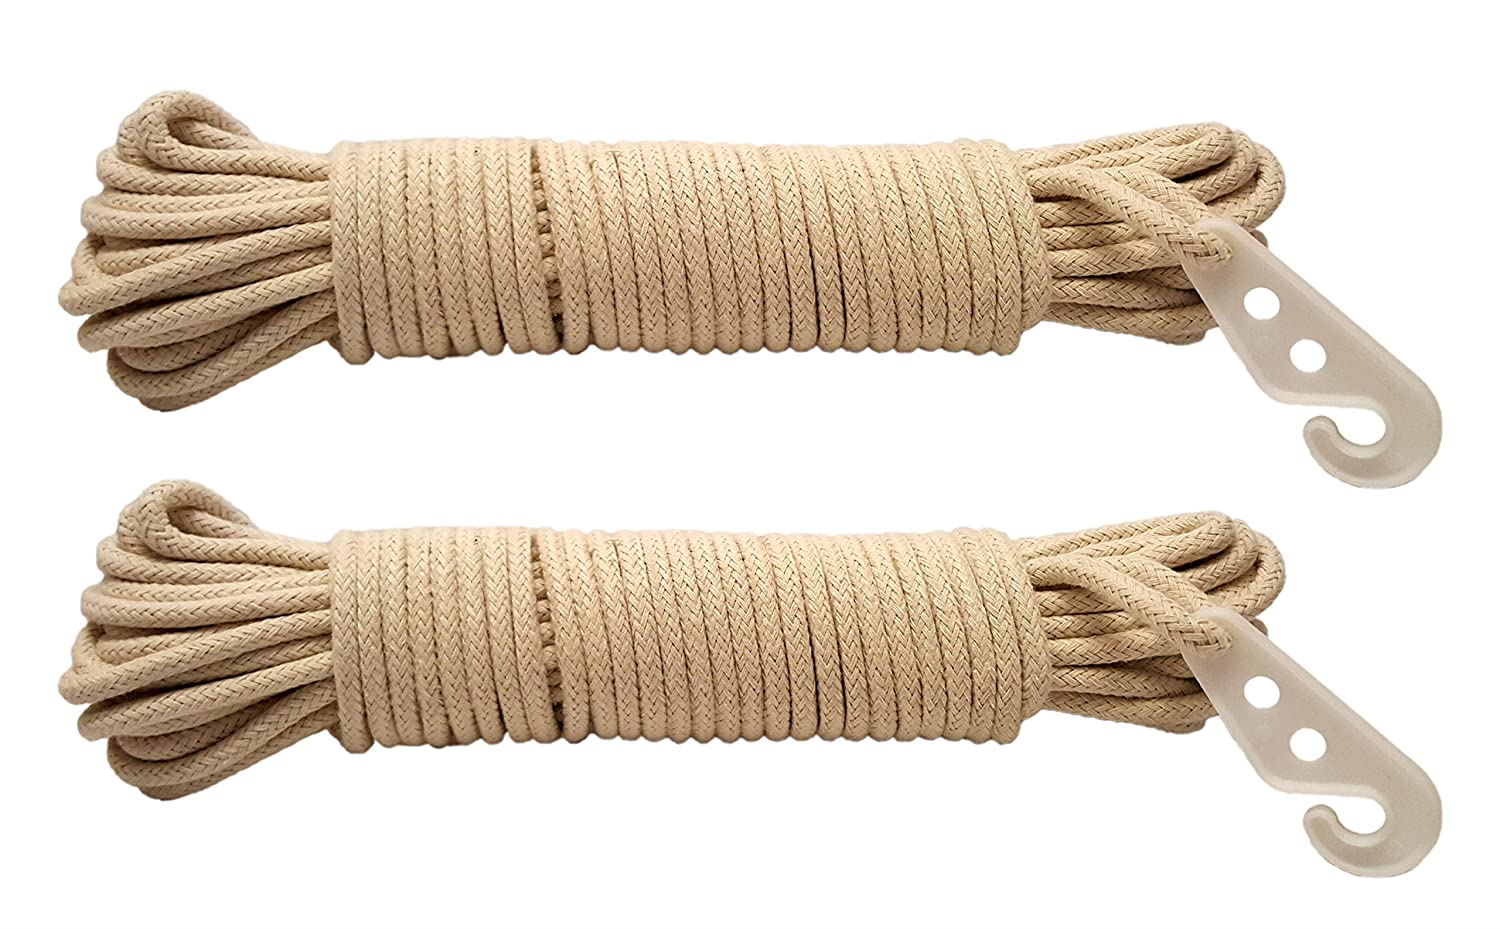 Black Duck Brand Set of 2 Braided Cotton Clothes Lines with Hooks 1//4 x 50